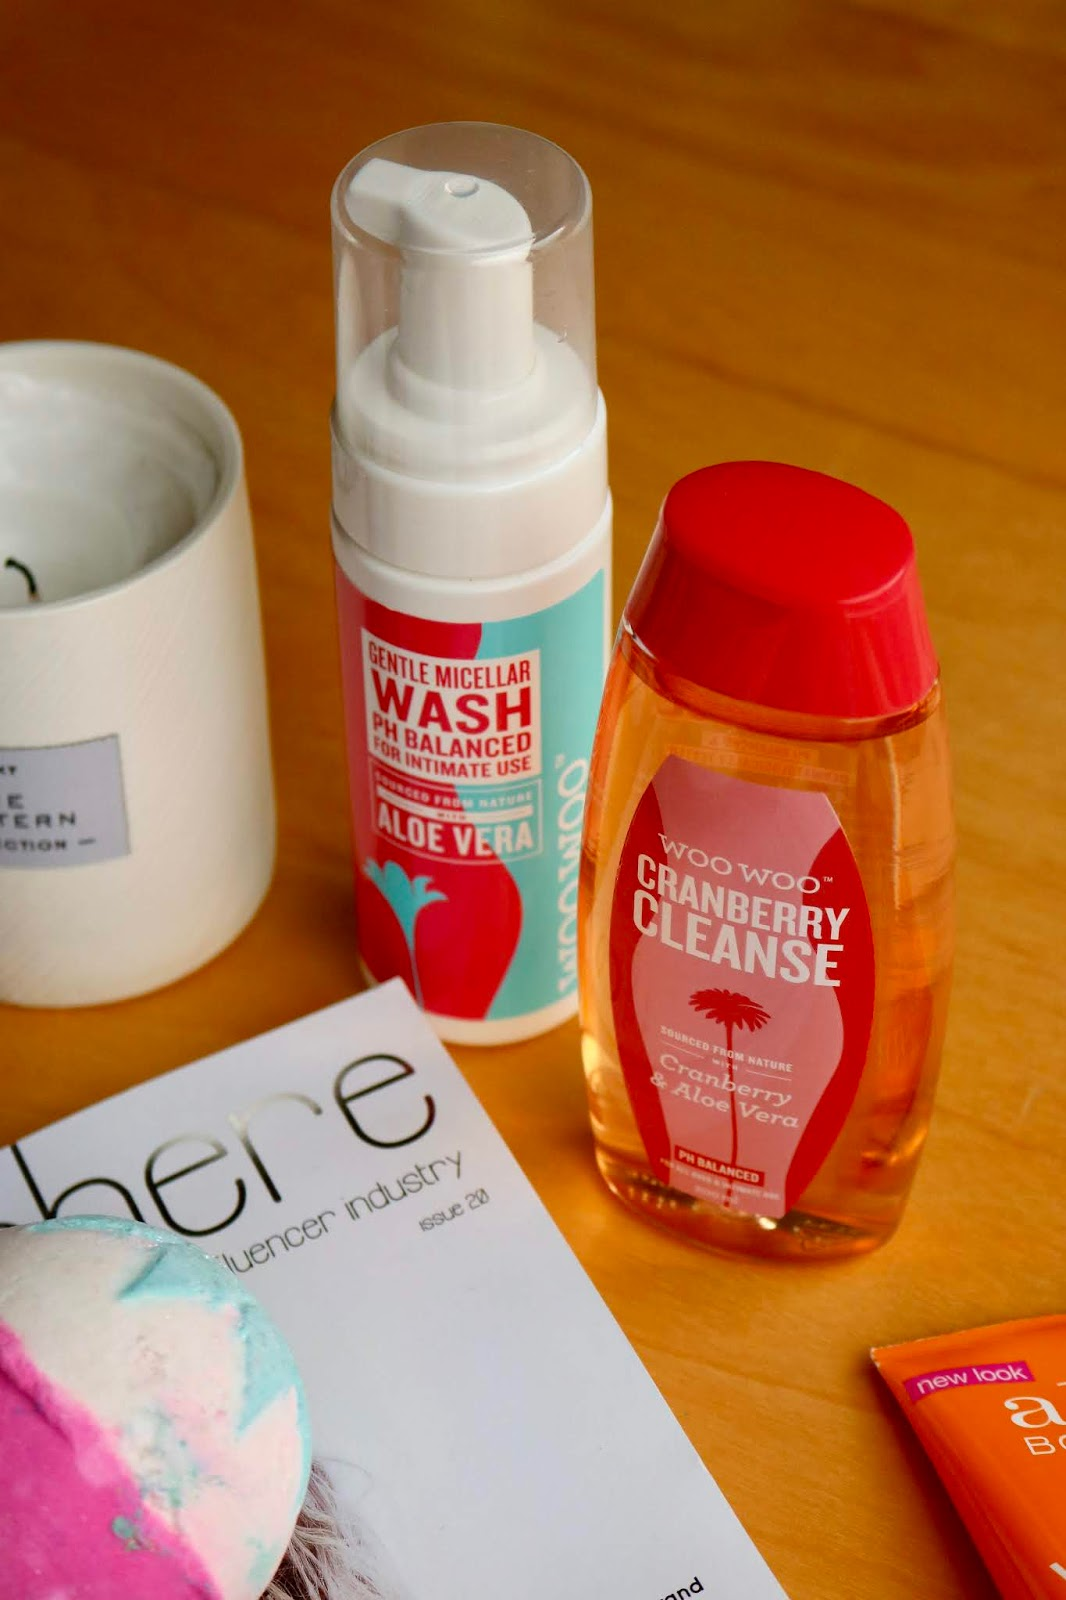 WooWoo Pamper It Micellar Wash and Cranberry Cleanse Wash